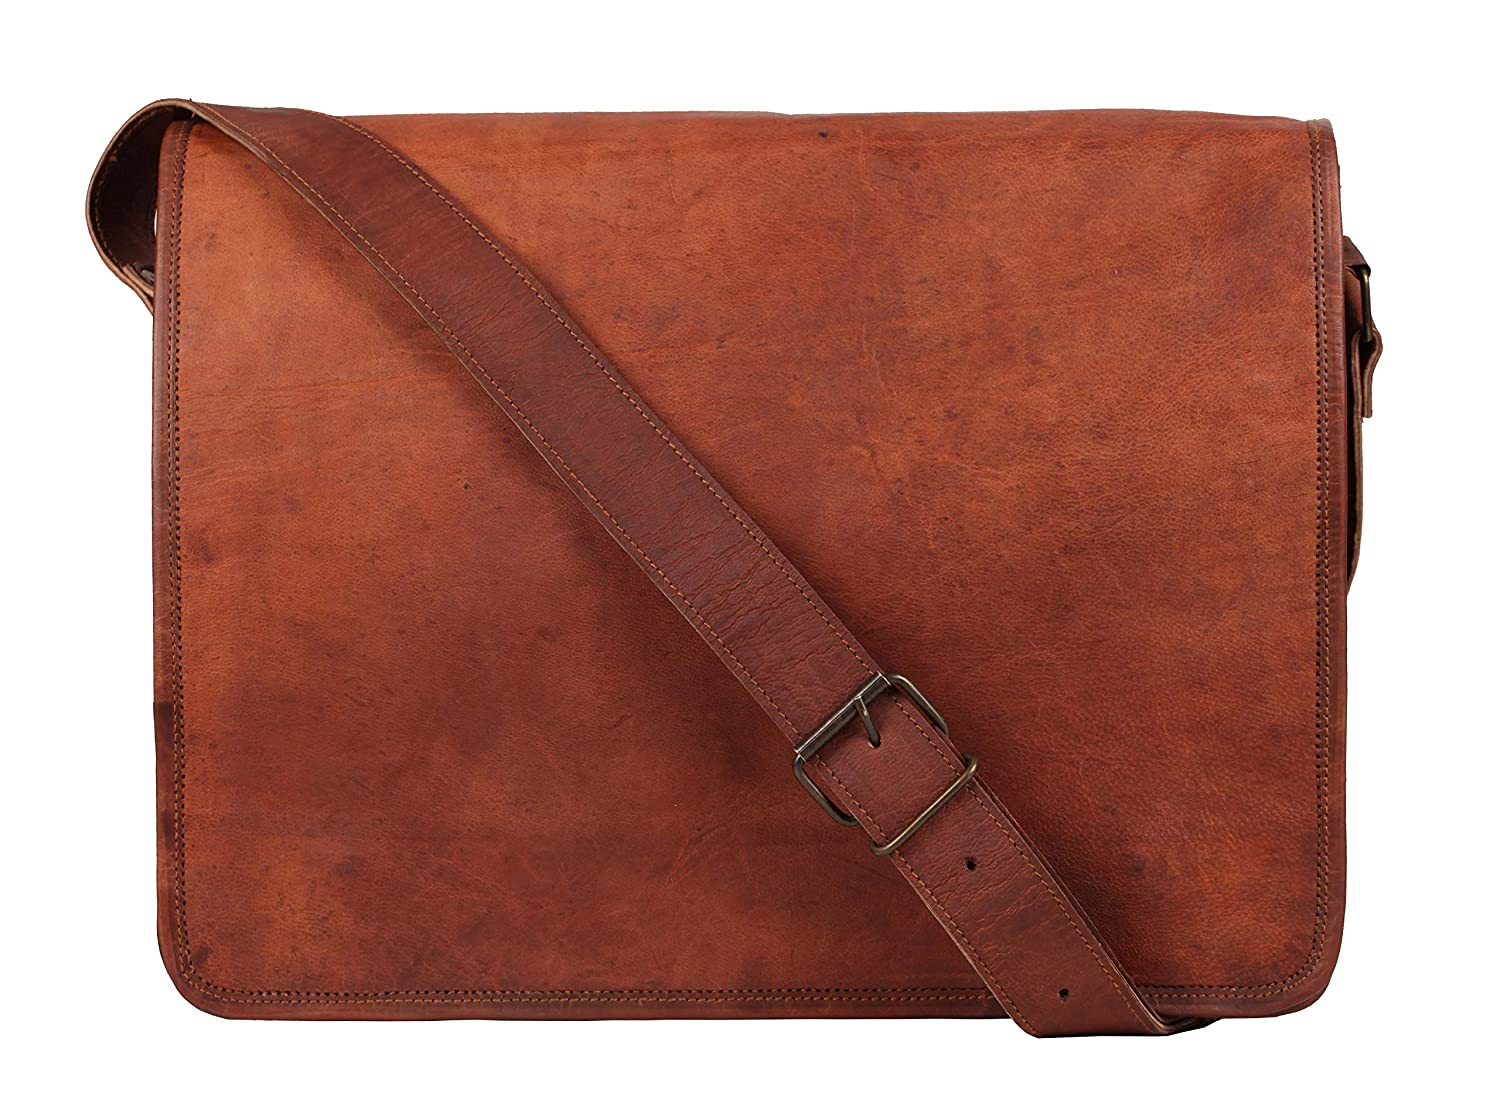 Rustic Town 15 inch Vintage Crossbody Genuine Leather Laptop Messenger Bag Rustic Town Inc SFR151104KR